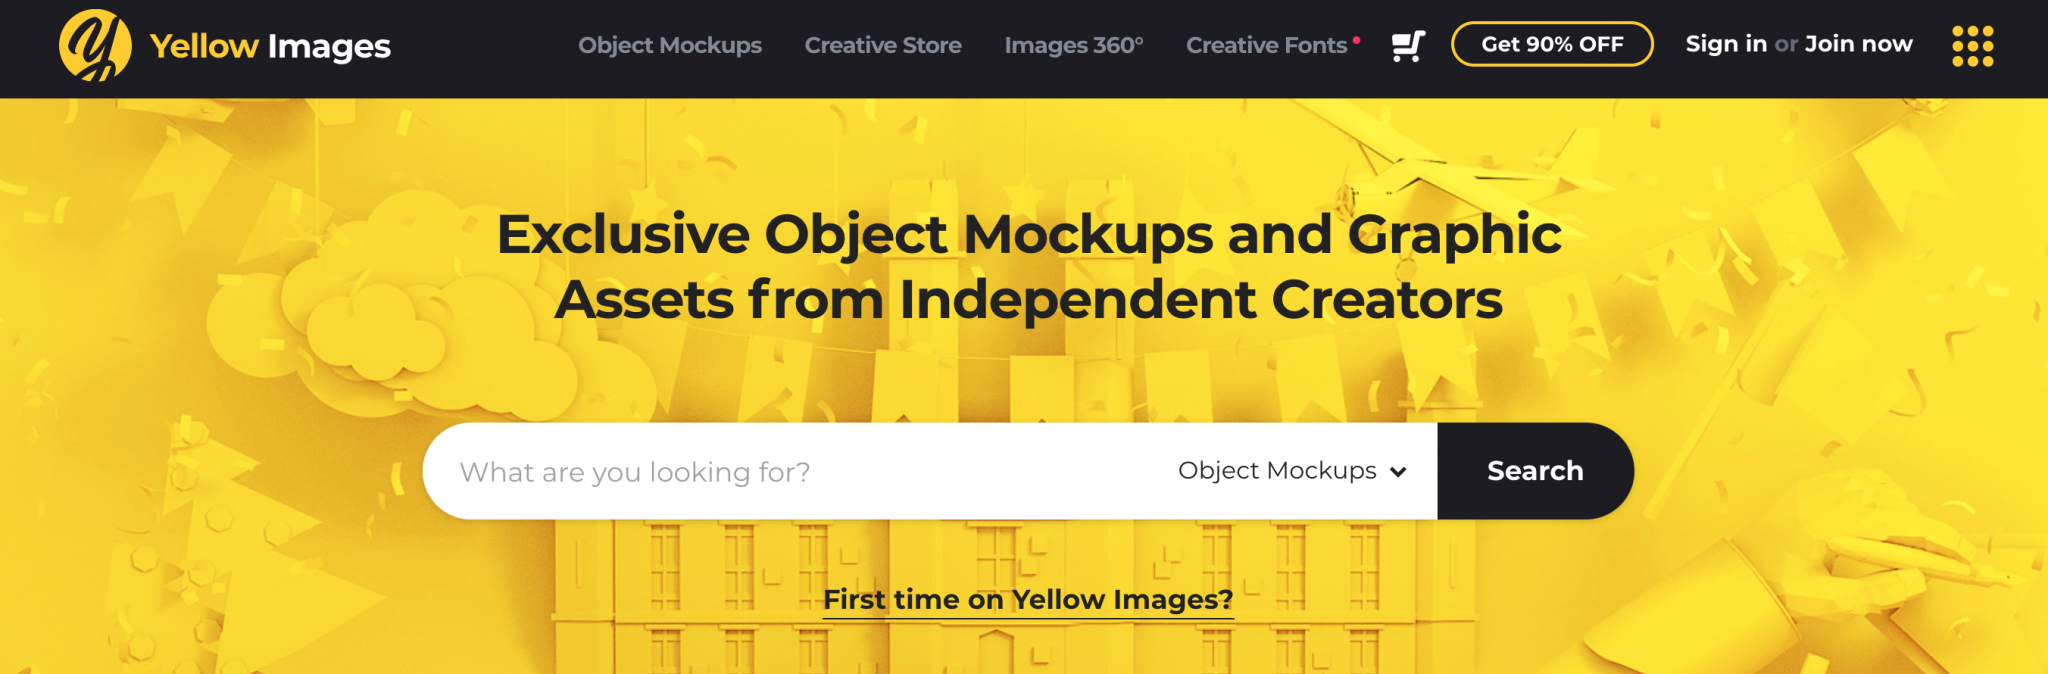 13 Best Free Online Tools to Create 3D Mockups in Seconds (No Photoshop Needed). thinkmaverick